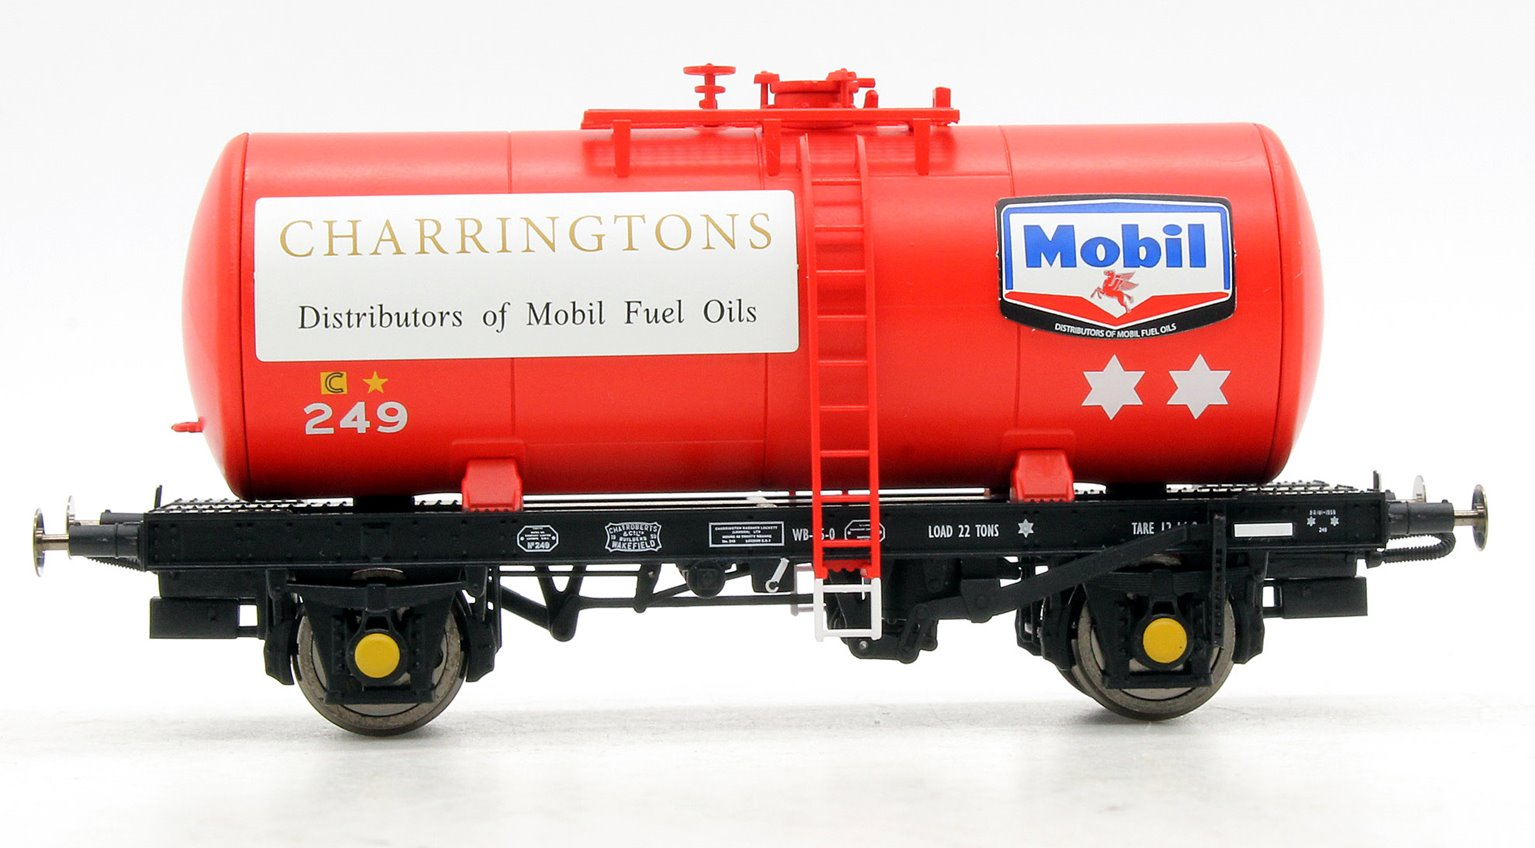 B Tank MOBIL CHARRINGTON FUEL OIL 249 (red)